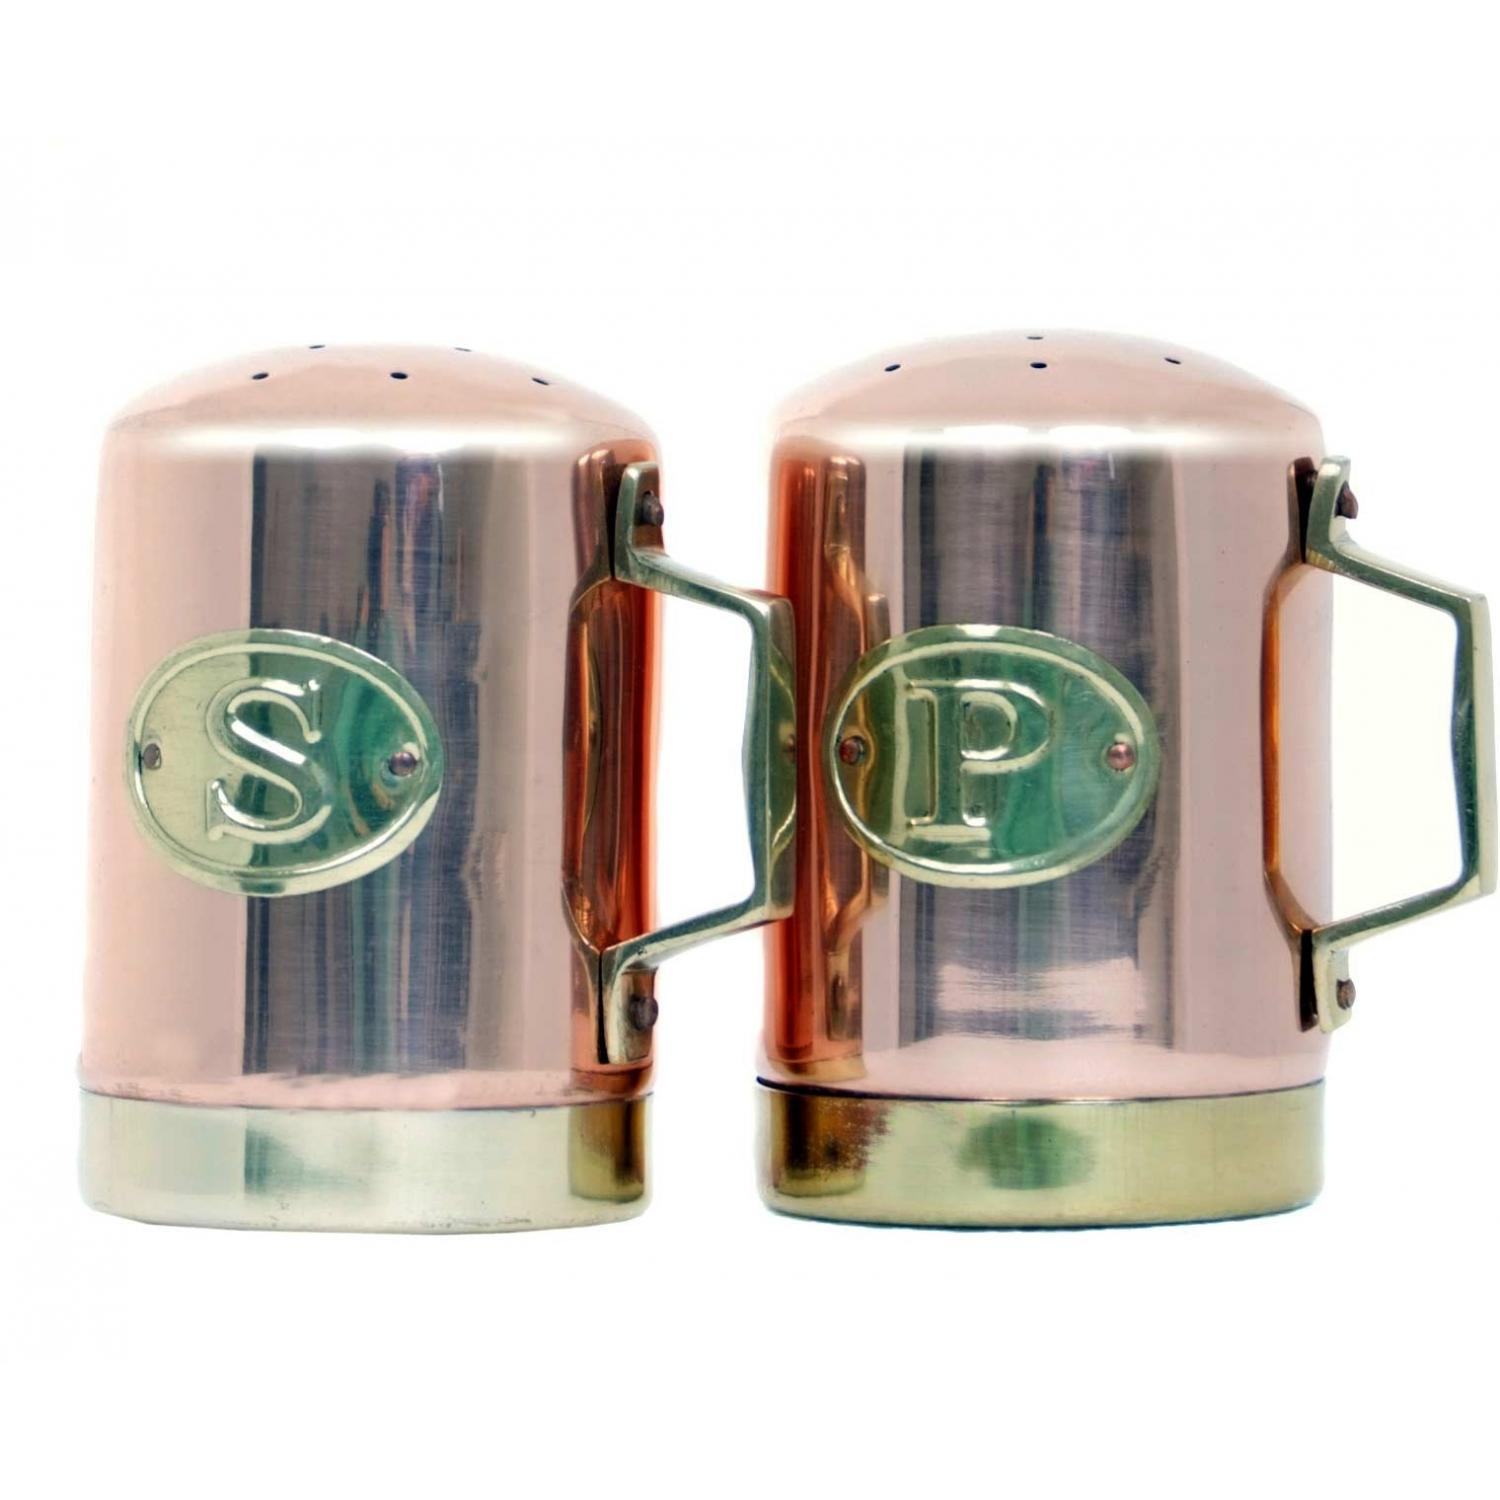 Old Dutch Copper Salt And Pepper Shakers - 4.25 Inch at Sears.com